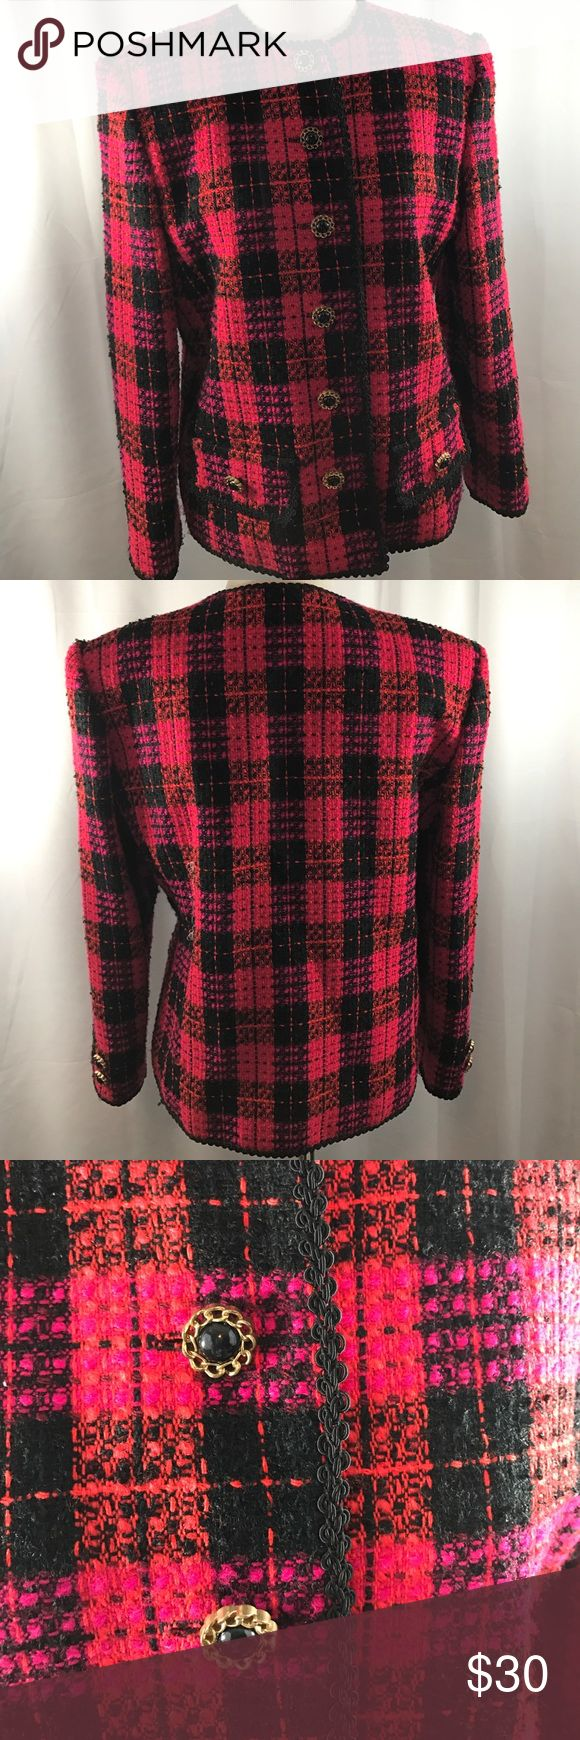 Plaid Blazer Stylish plaid blazer. Has cute buttons with two decorative front pockets.  Braided edged trim detail.  Blazer is pink, red and black. Morgan Miller Jackets & Coats Blazers